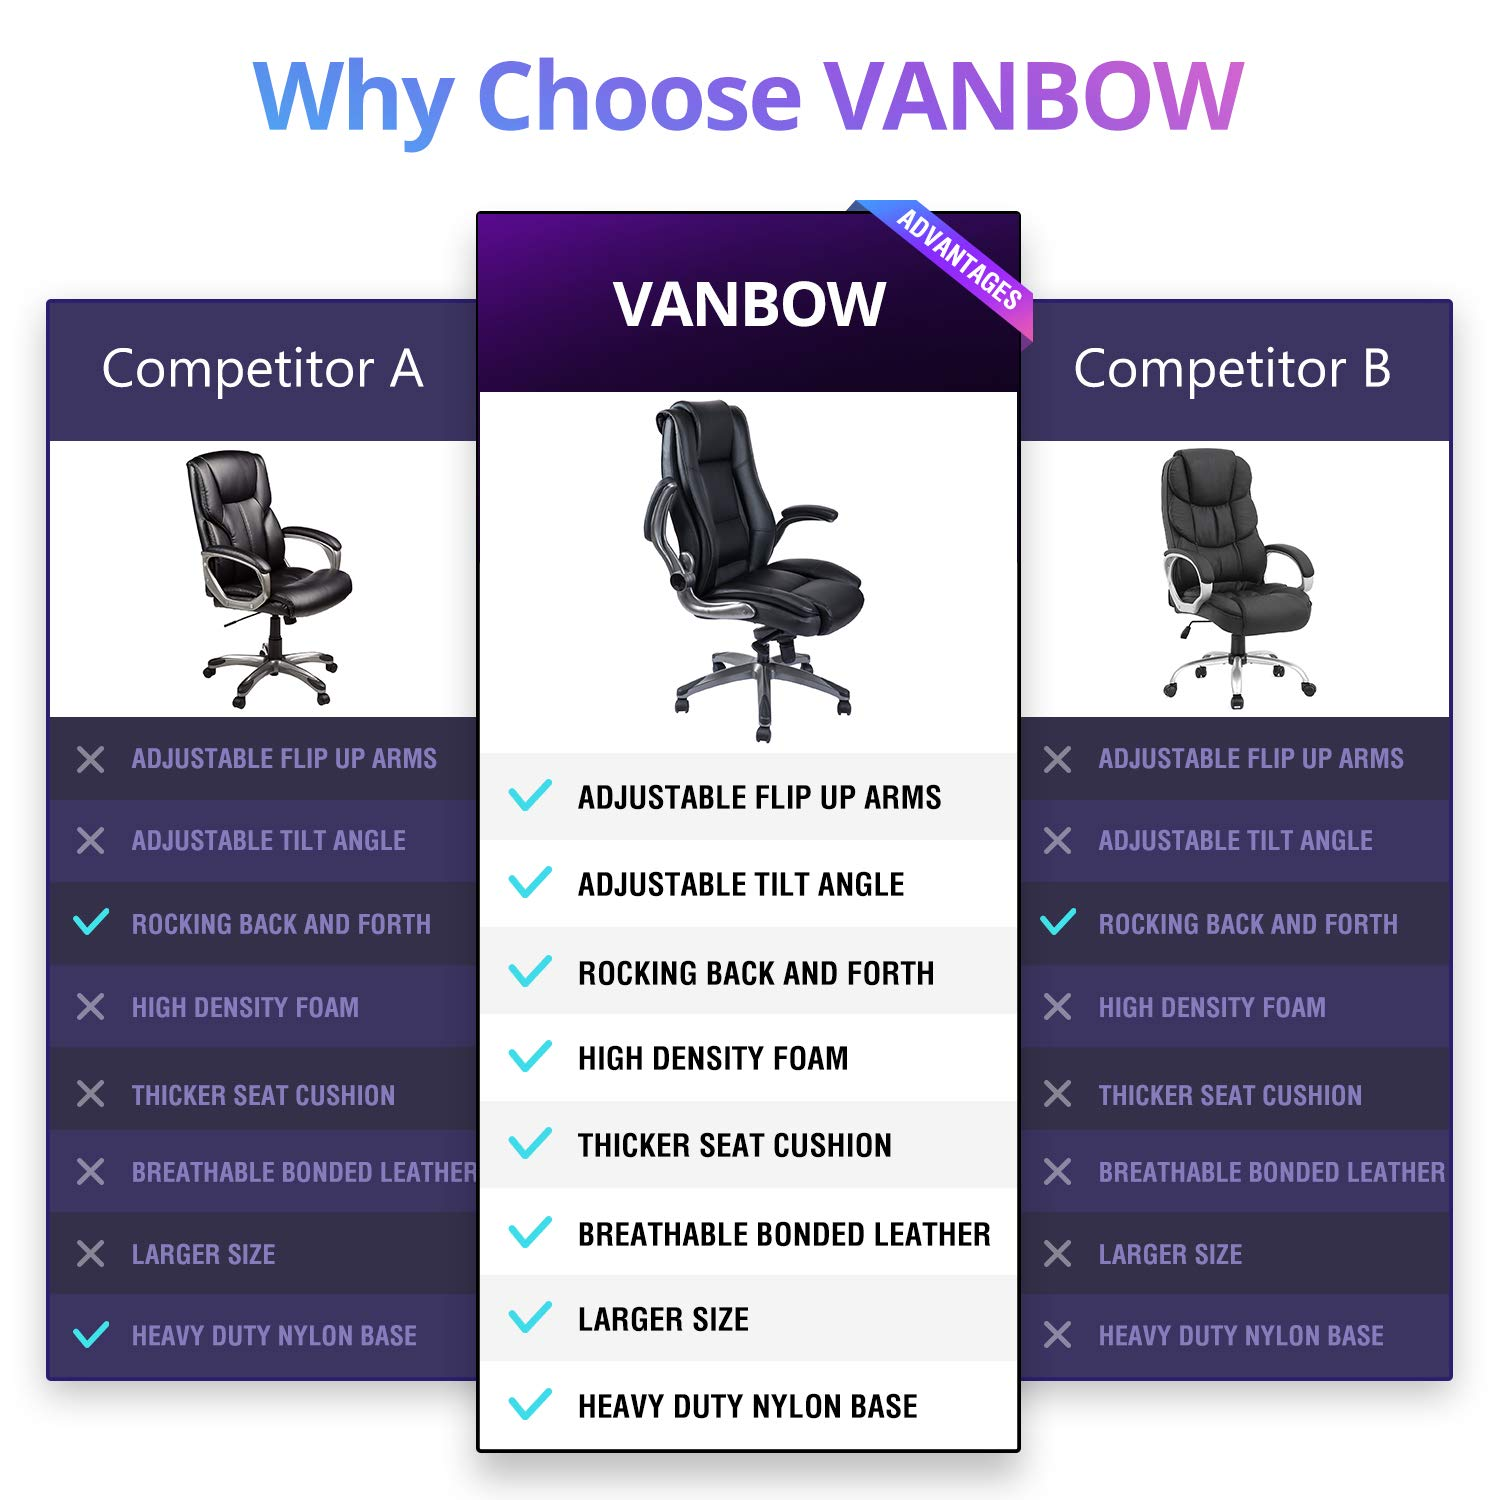 VANBOW High Back Leather Office Chair - Adjustable Tilt Angle and Flip-up Arms Executive Computer Desk Chair, Thick Padding for Comfort and Ergonomic Design for Lumbar Support, Black by VANBOW (Image #4)